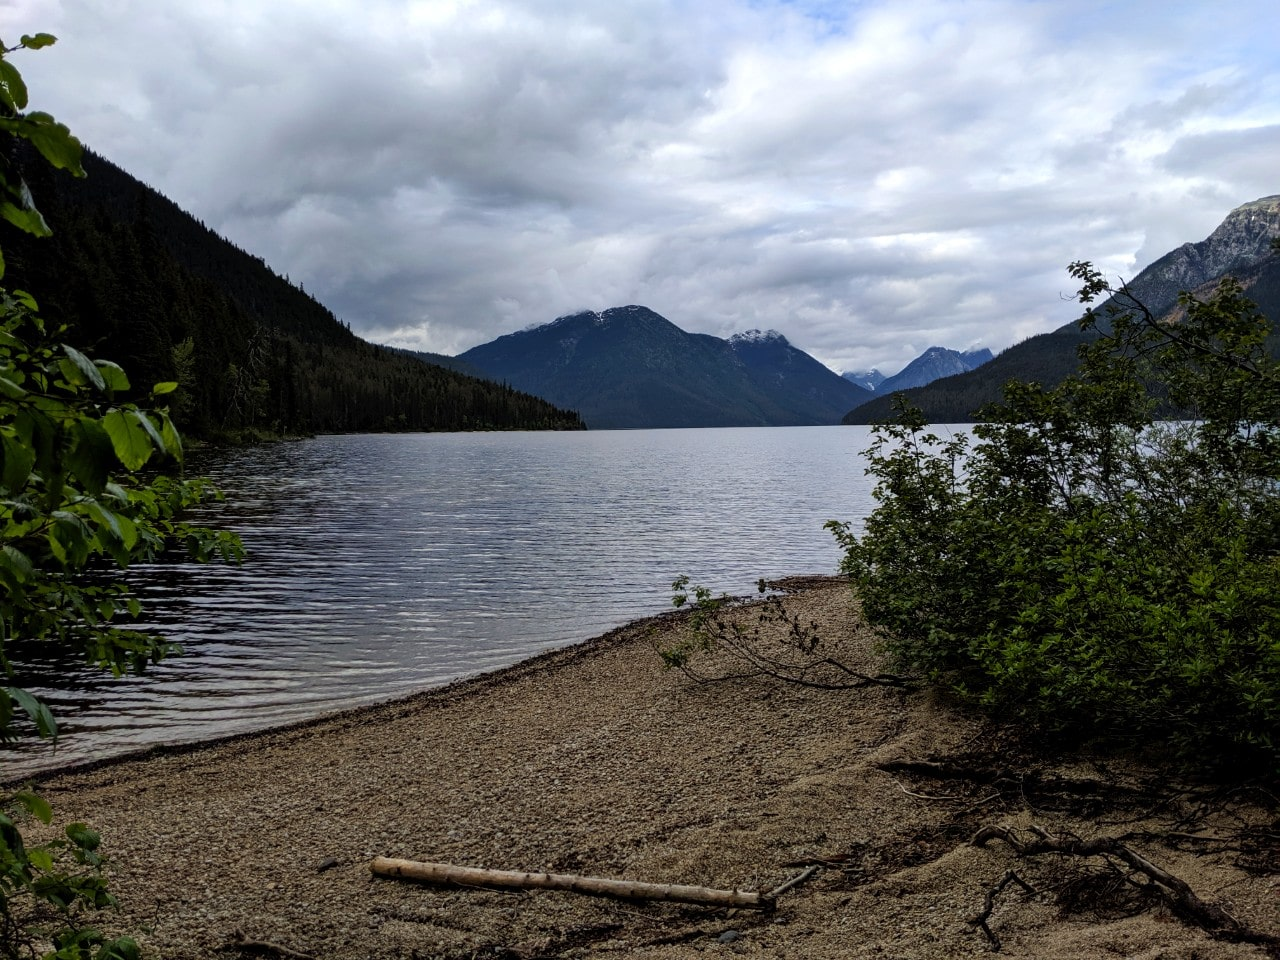 View from gravel beach at Little Anderson campsite looking up Murtle Lake towards mountainous North Arm of lake